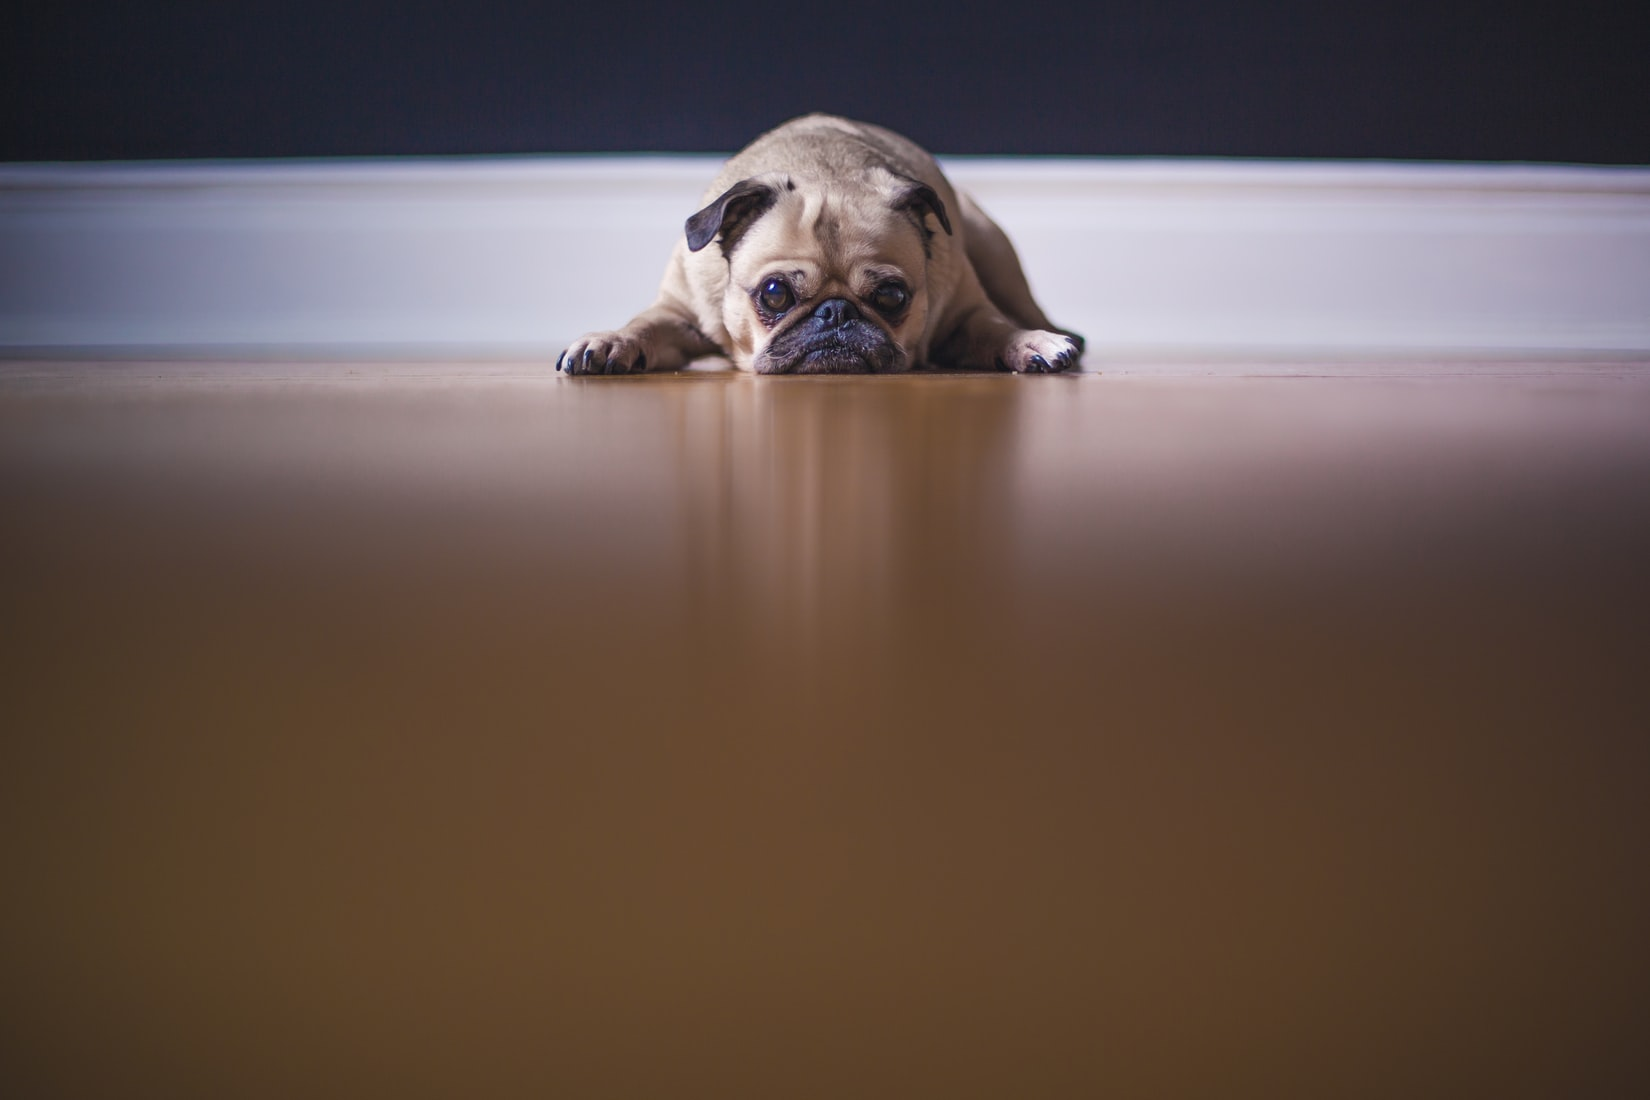 pug laying on the floor